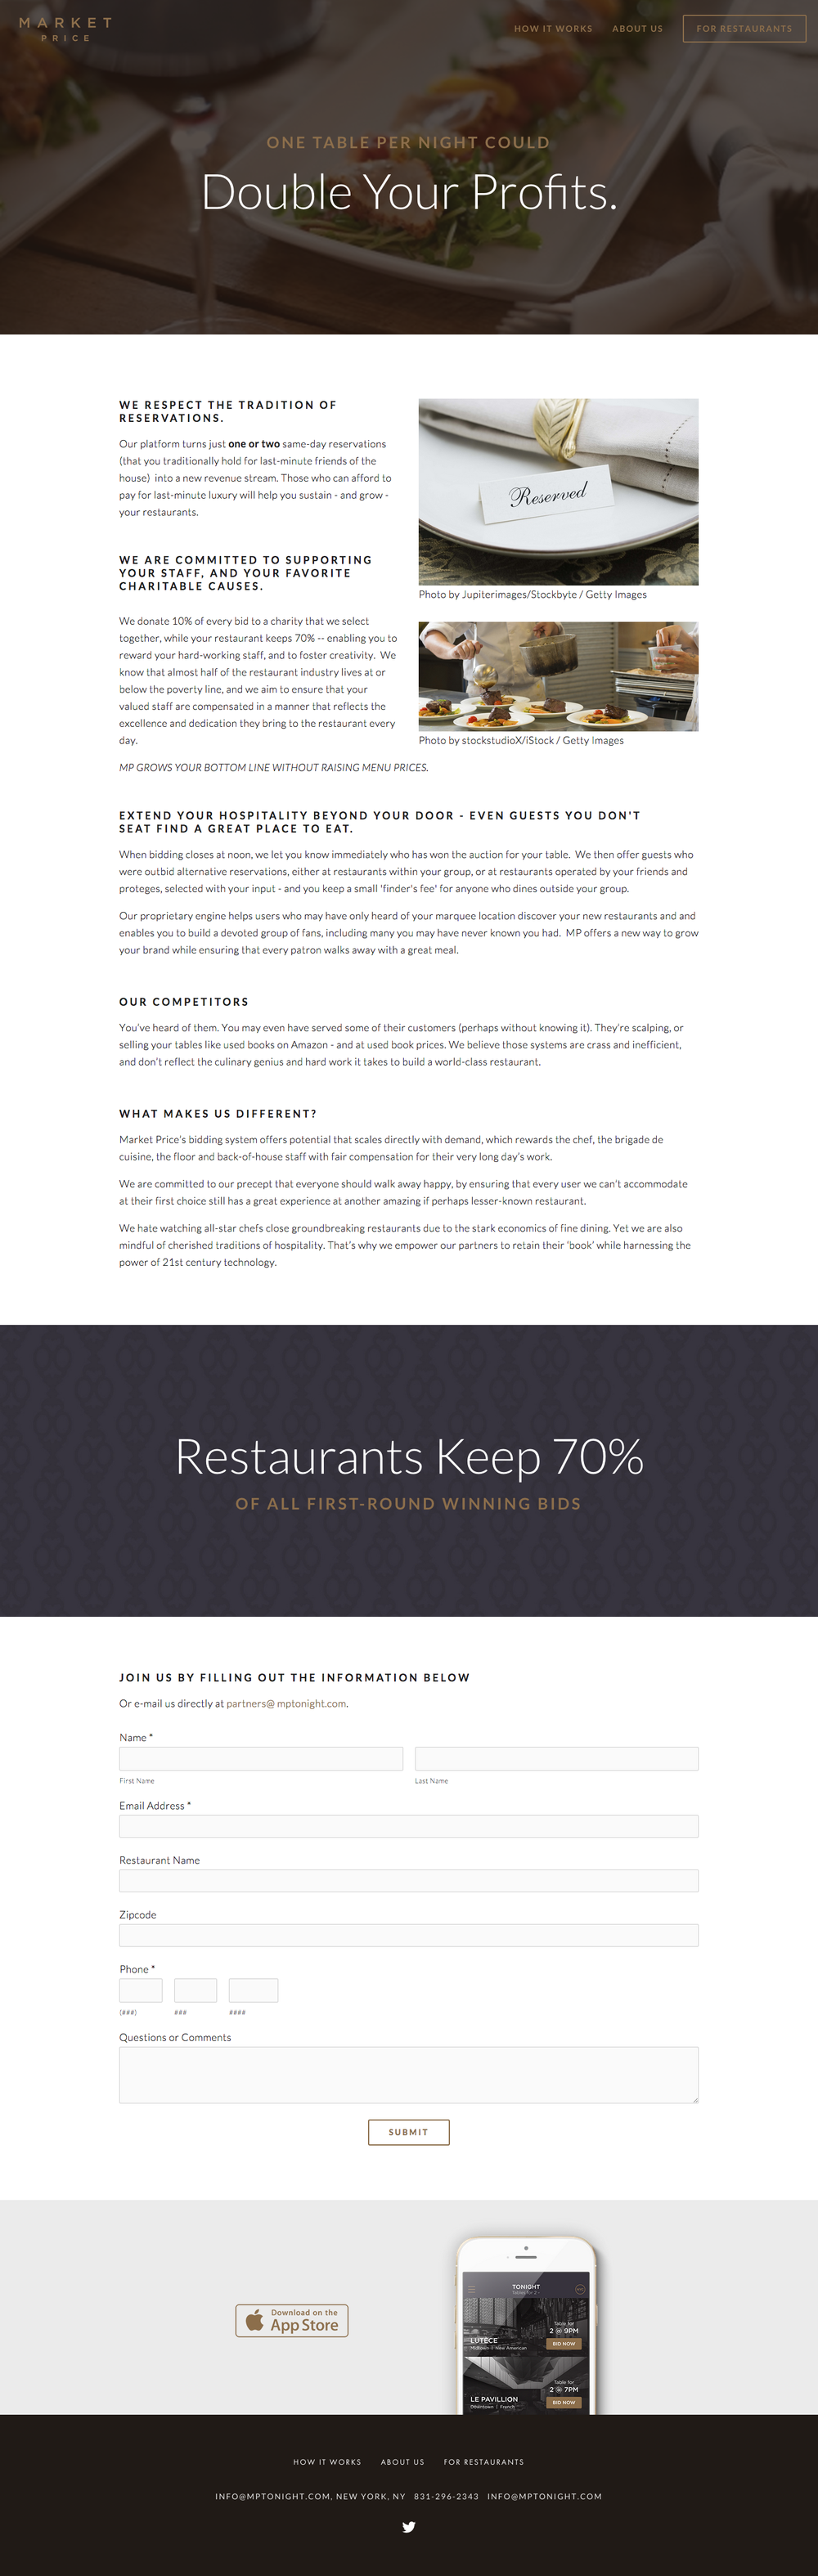 "Promotional website ""For Restaurants"""